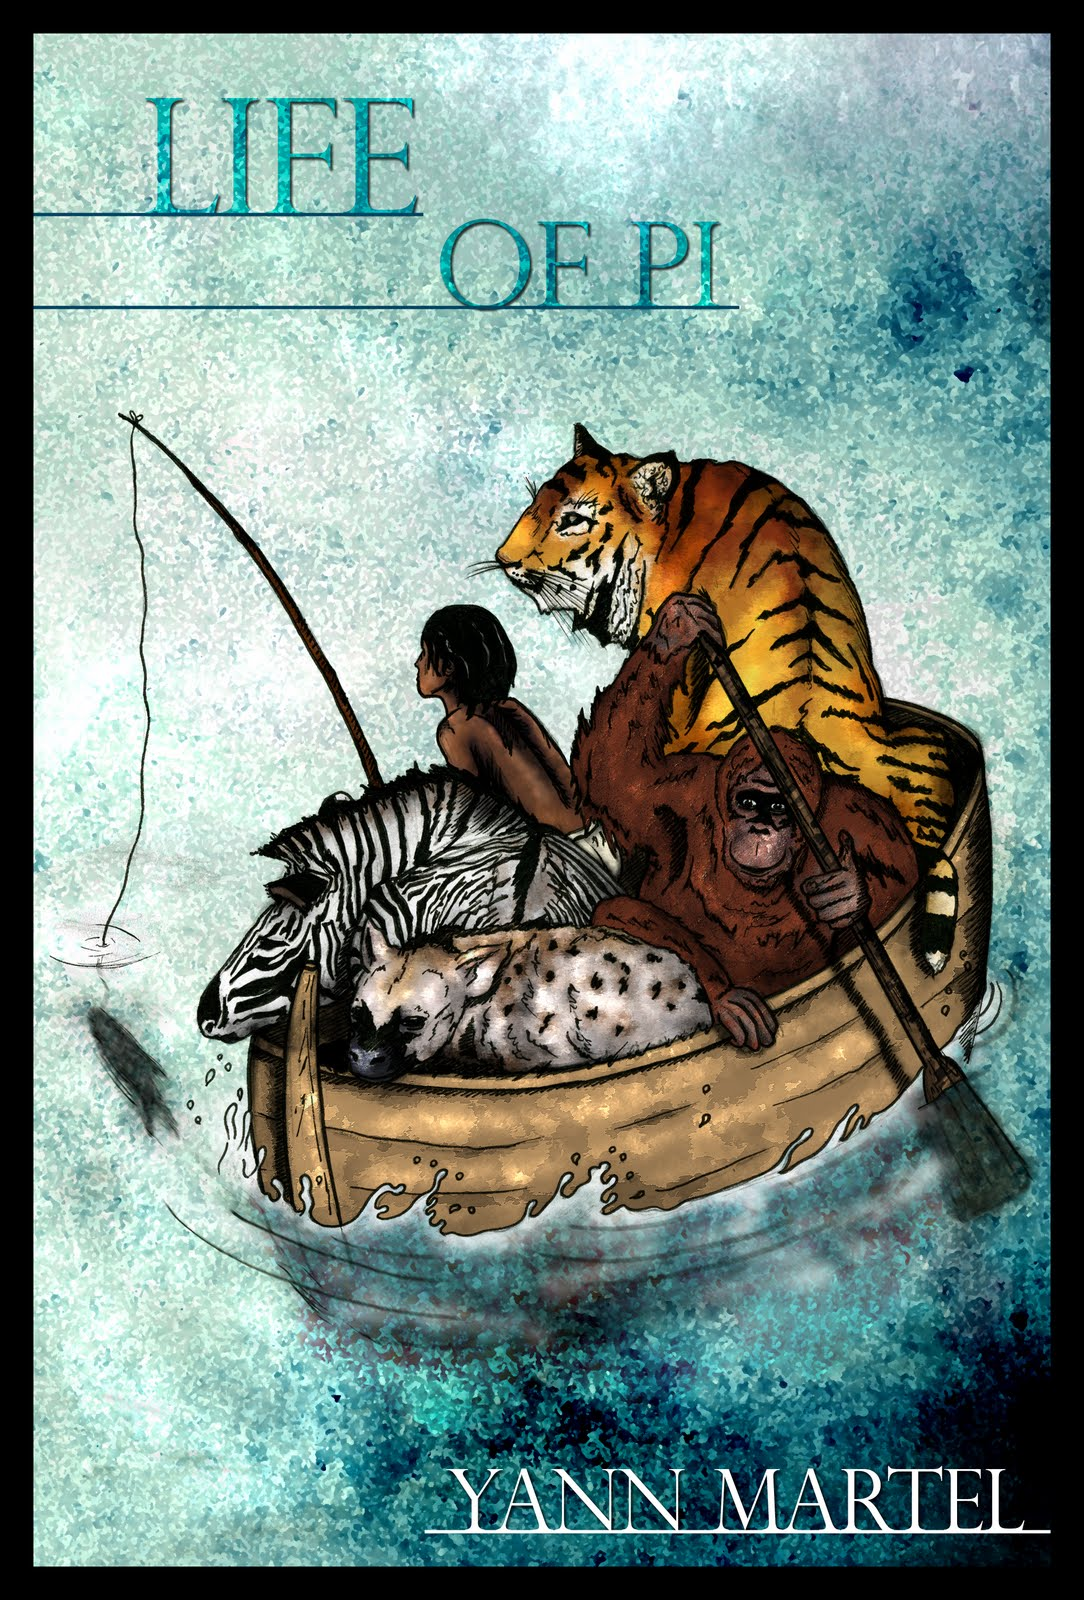 Flawed cracked but rare life of pi for Life of pi ending